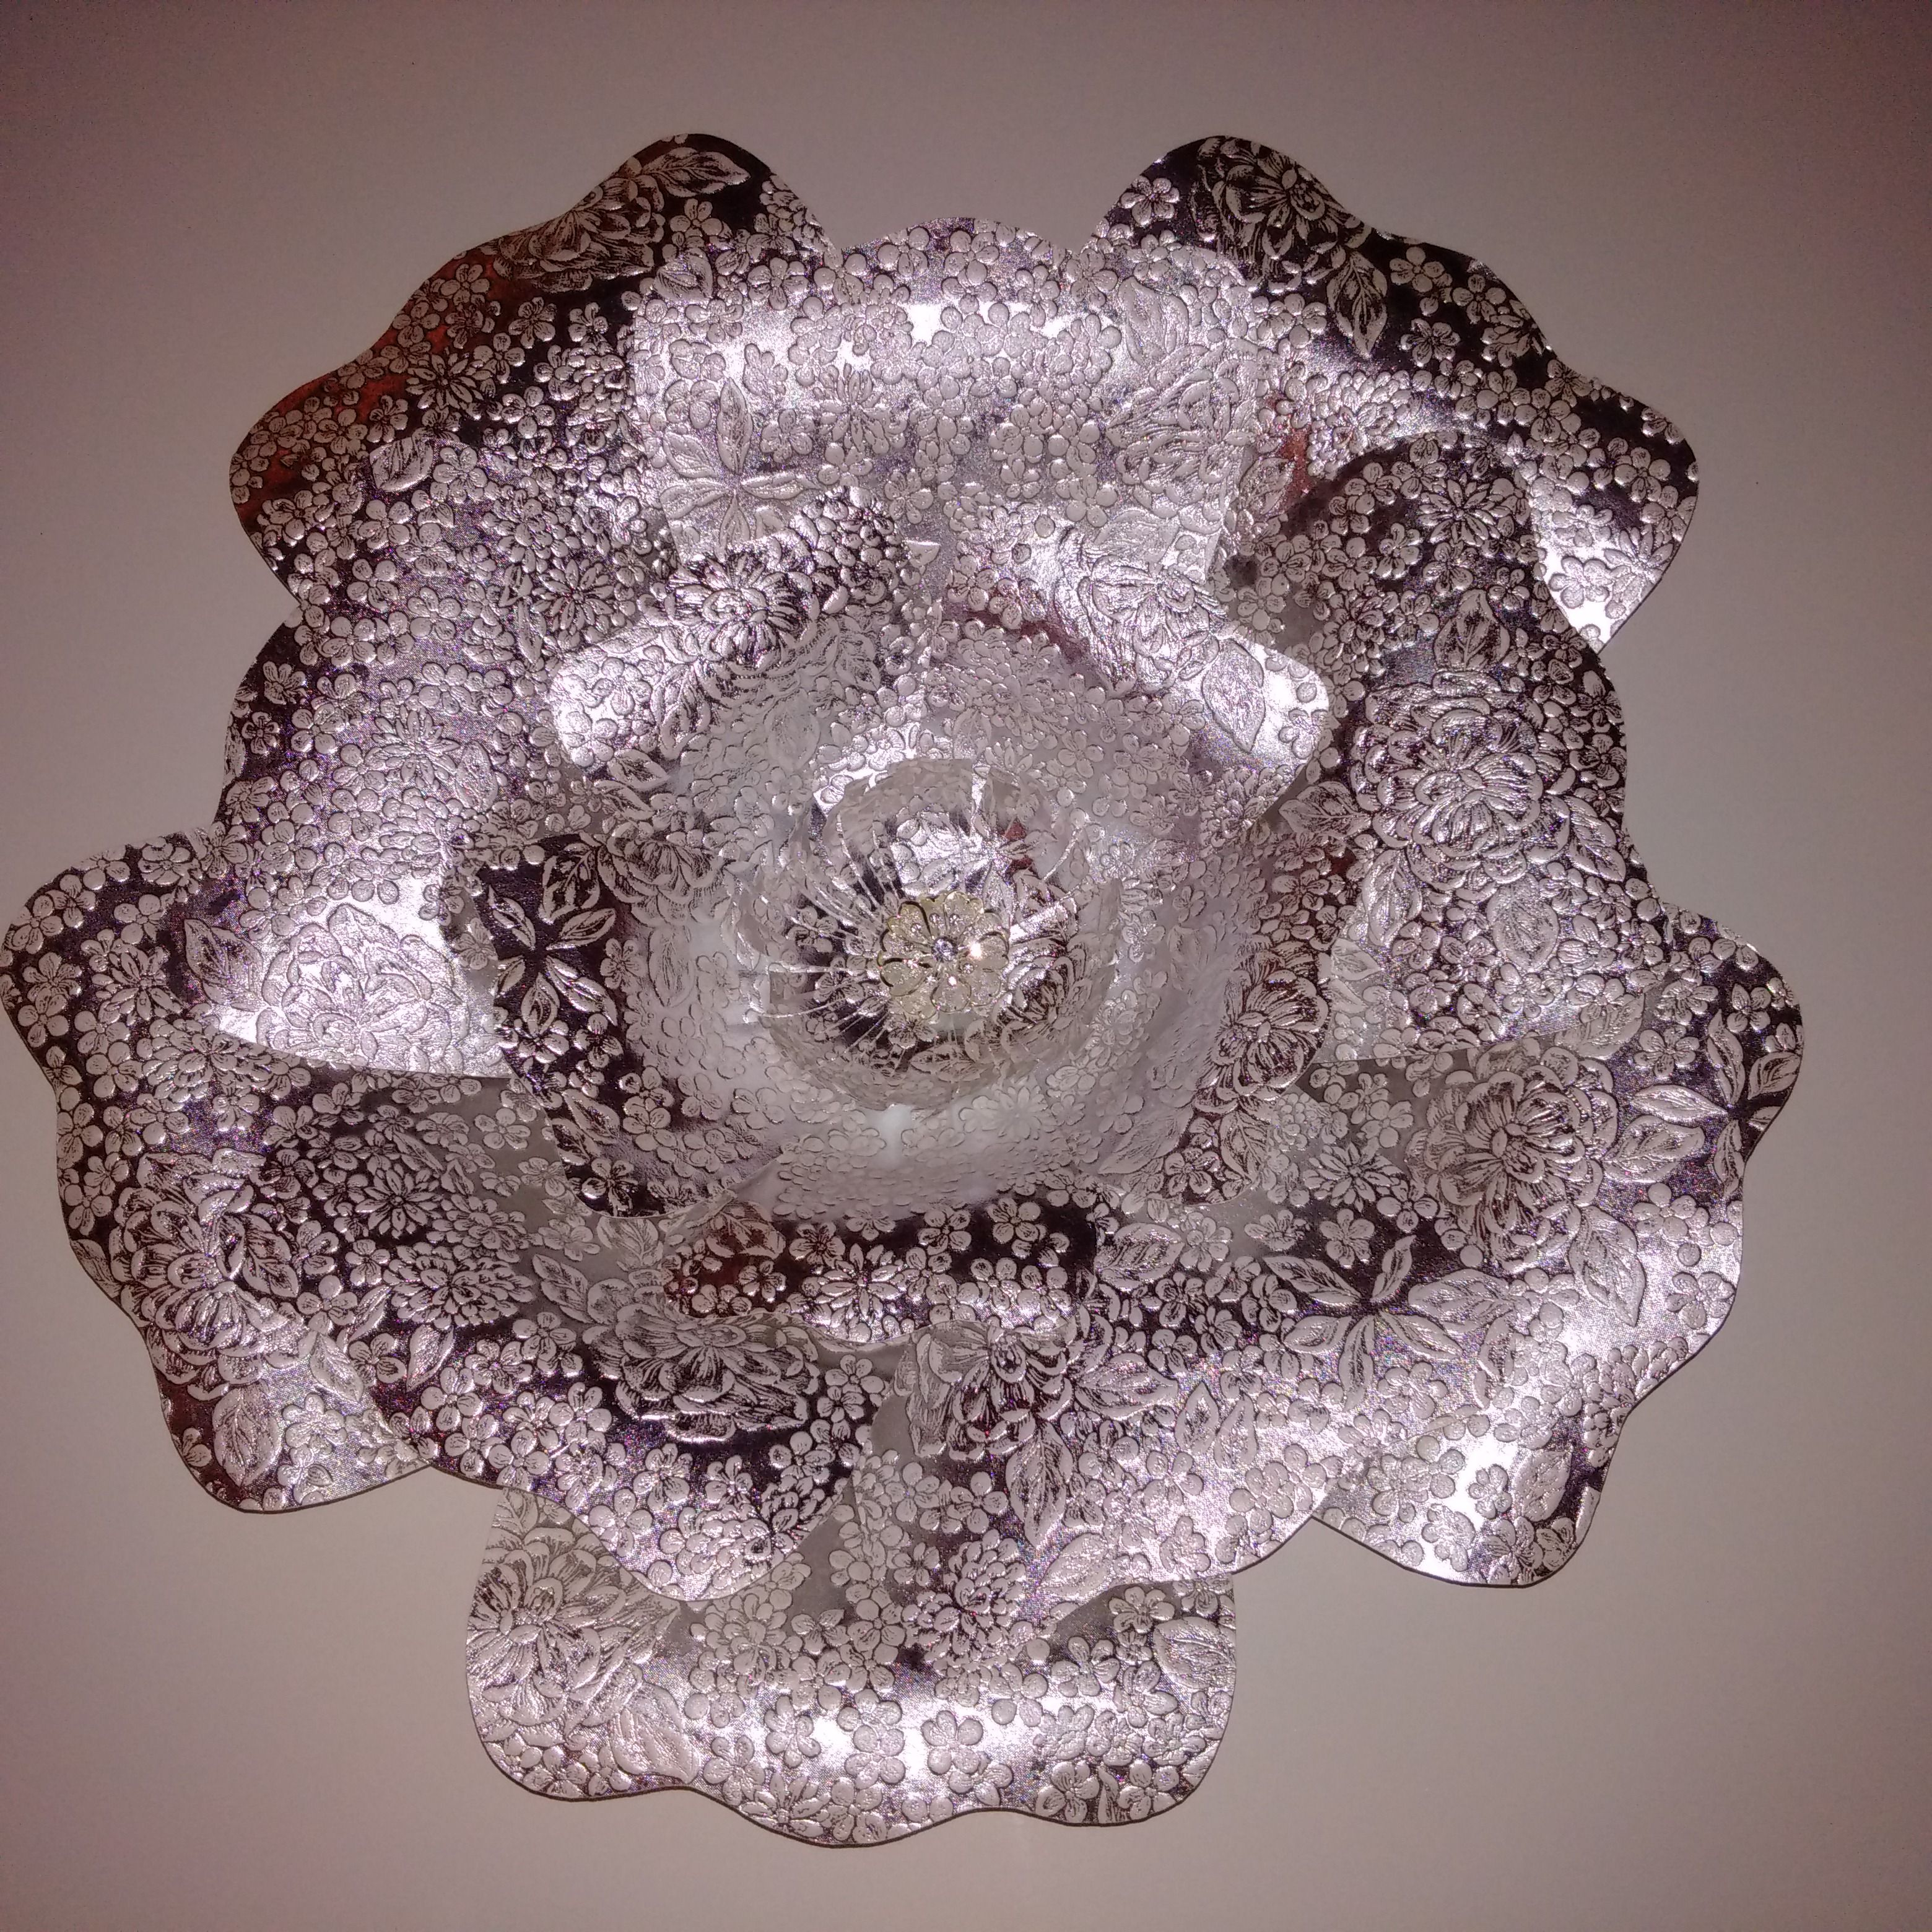 Large wall paper flower for wedding or house decor.